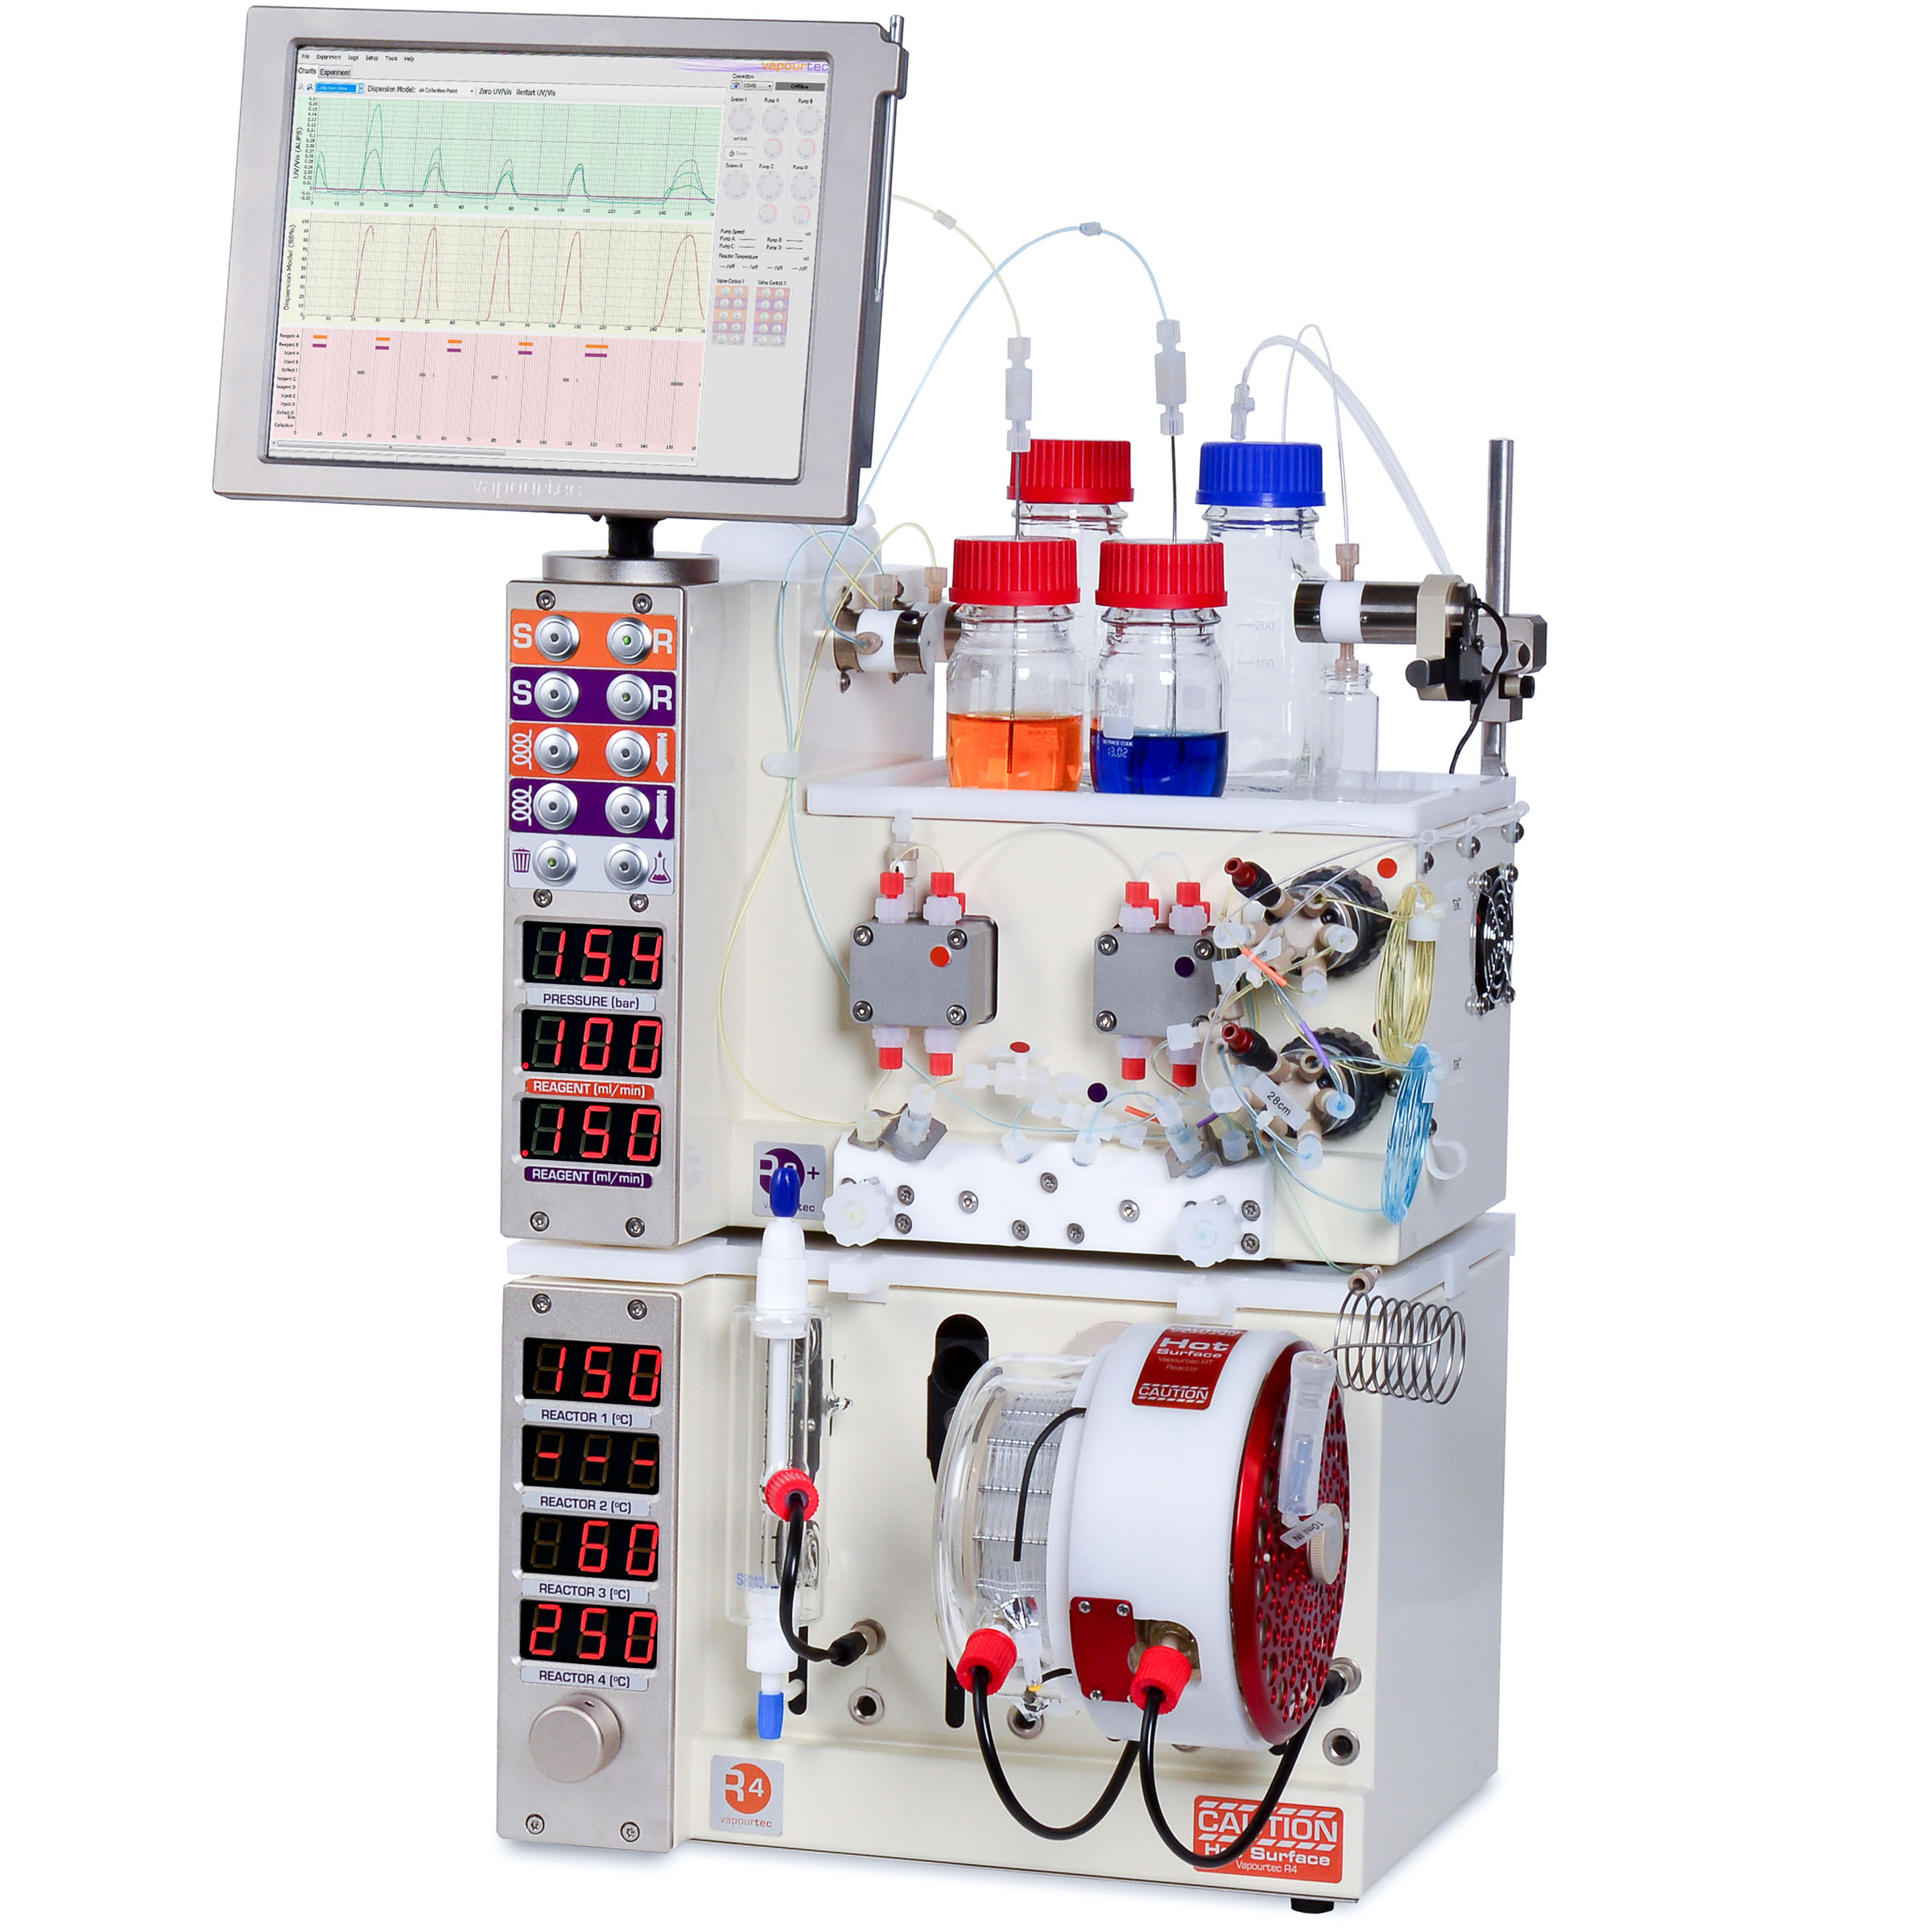 RS-200 advanced flow chemistry system